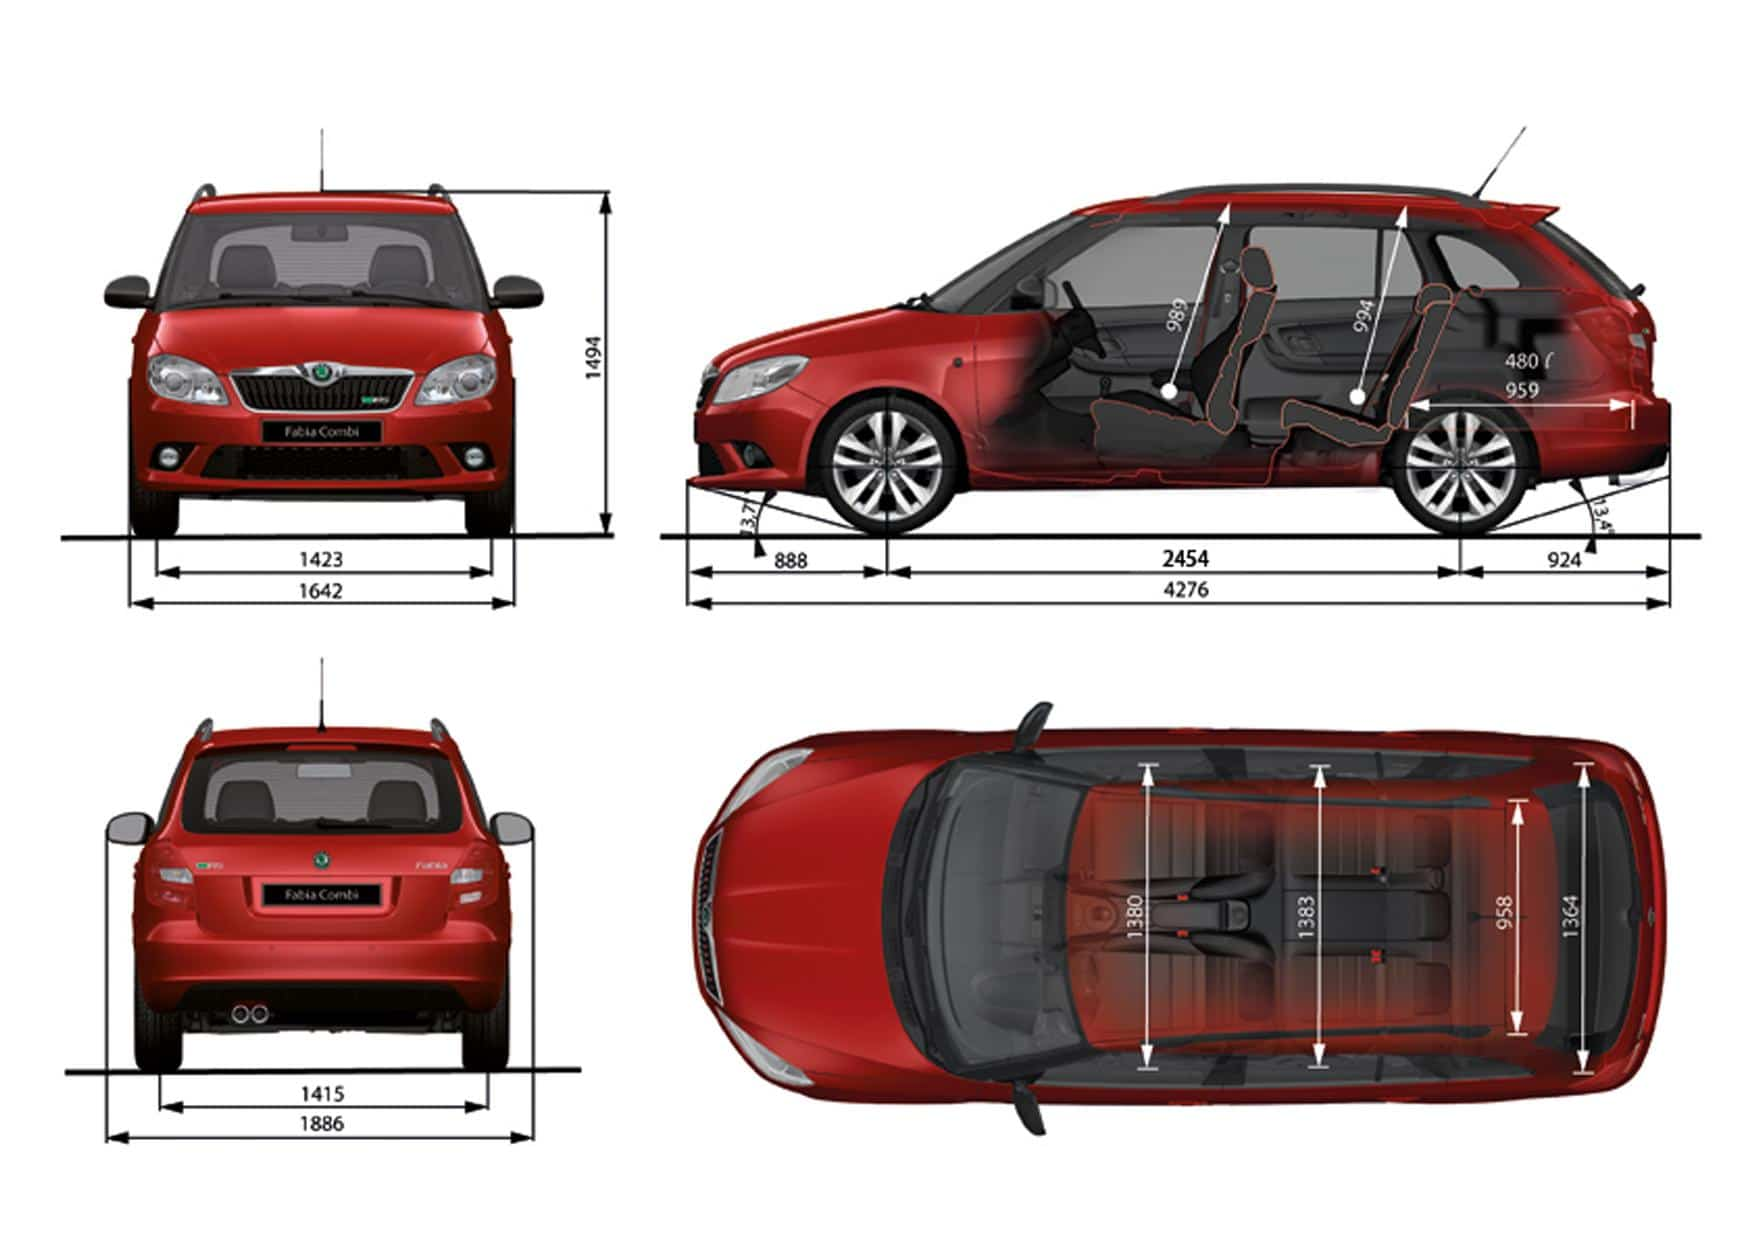 Skoda, Skoda Auto, Sokda Fabia, Fabia, Fabia VrS, Volkswagen, Volkswagen Polo, dieselgate, small car, cheap car, barain car, family car, hatchback, estate, Skoda Fabia buying guide, motoring, automotive, carandclassic.co.uk, carandclassic, adrian flux, featured